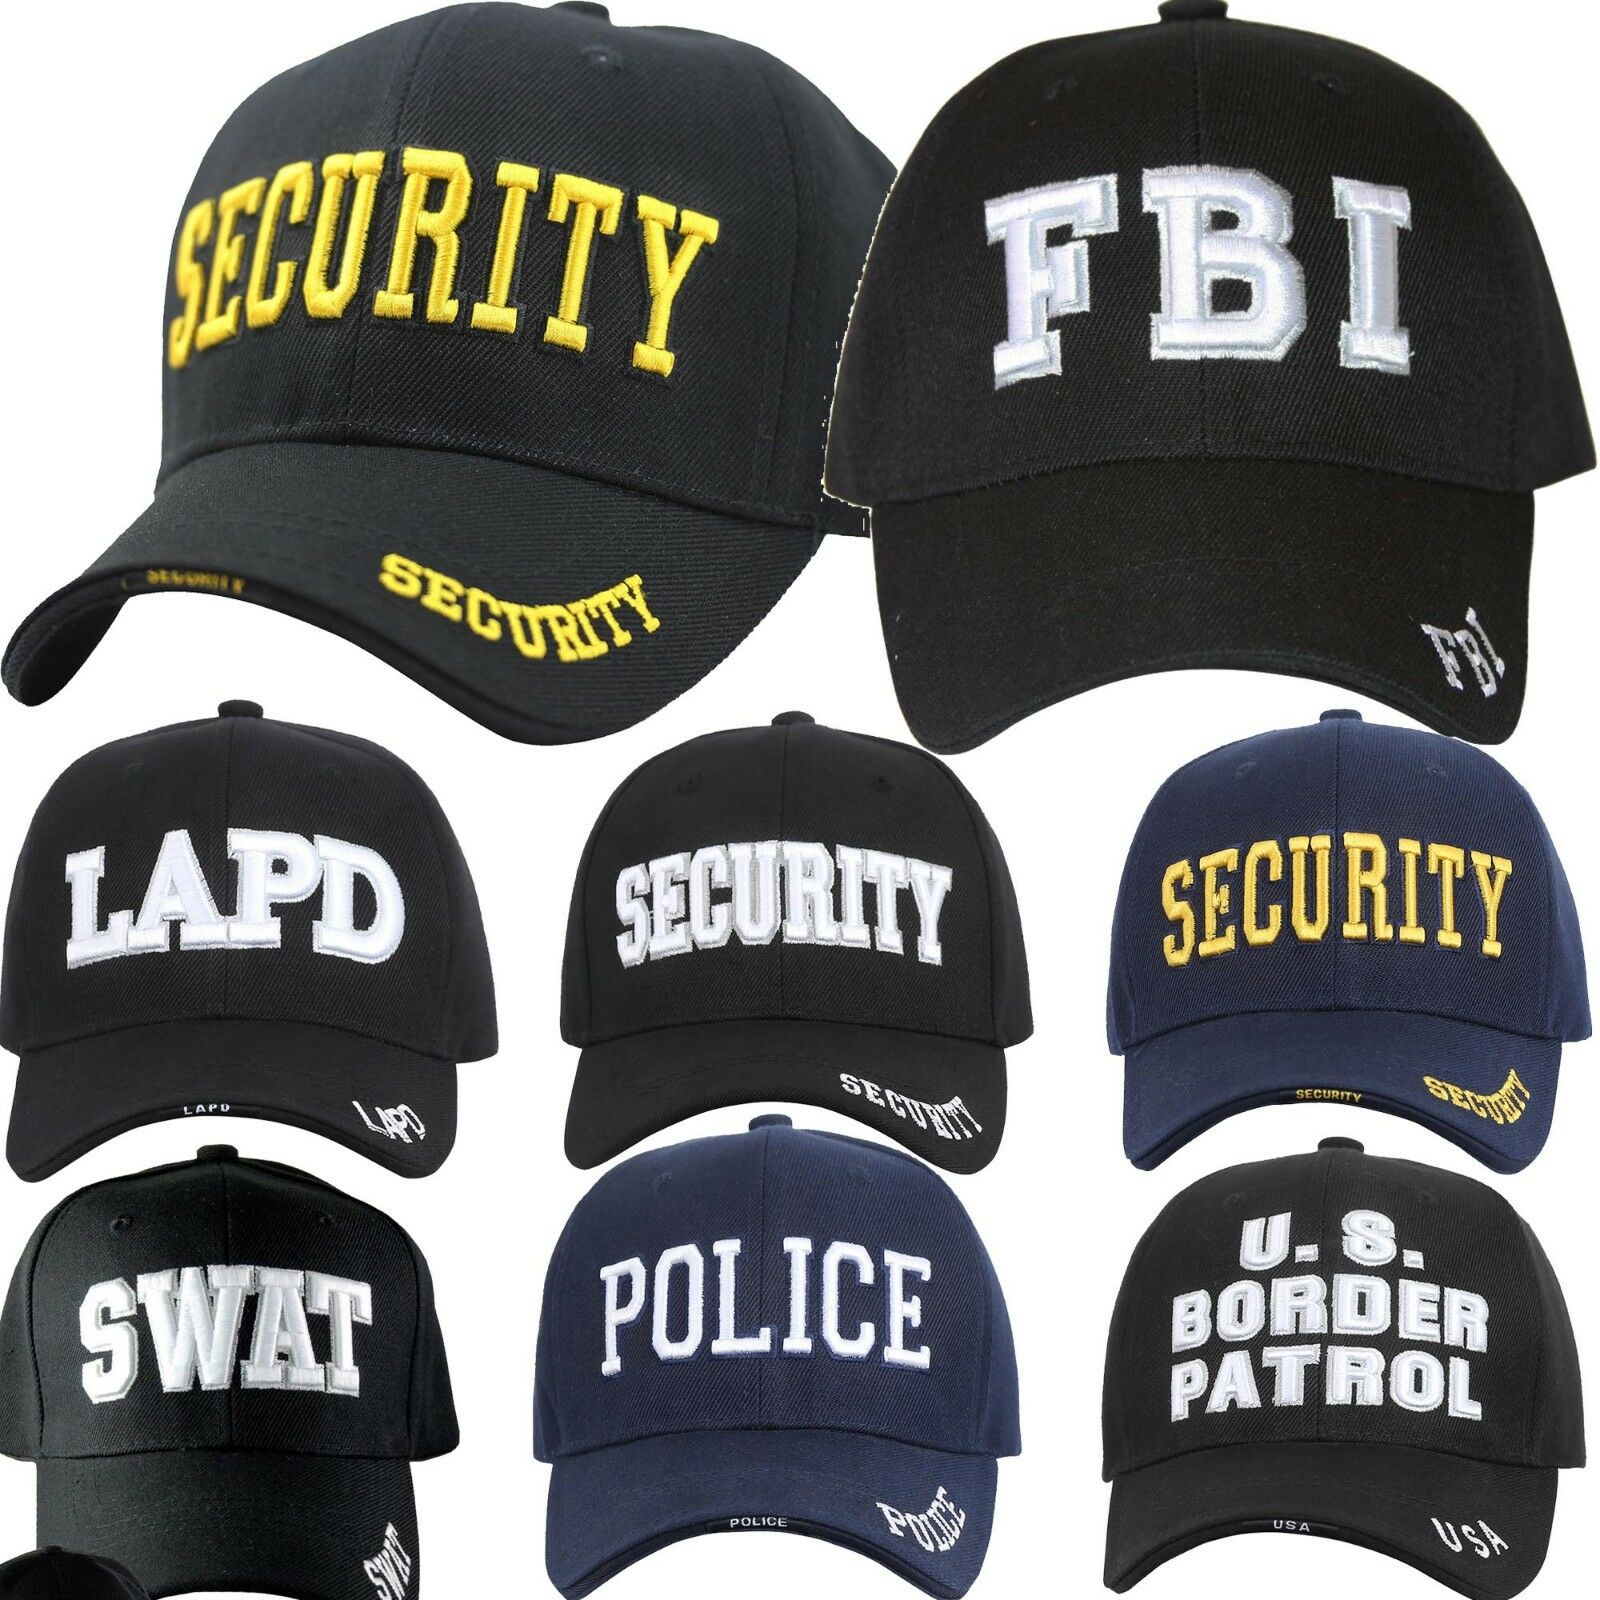 Baseball Cap FBI LAPD SWAT SECURITY US BORDER PATROL POLICE Navy Black Military